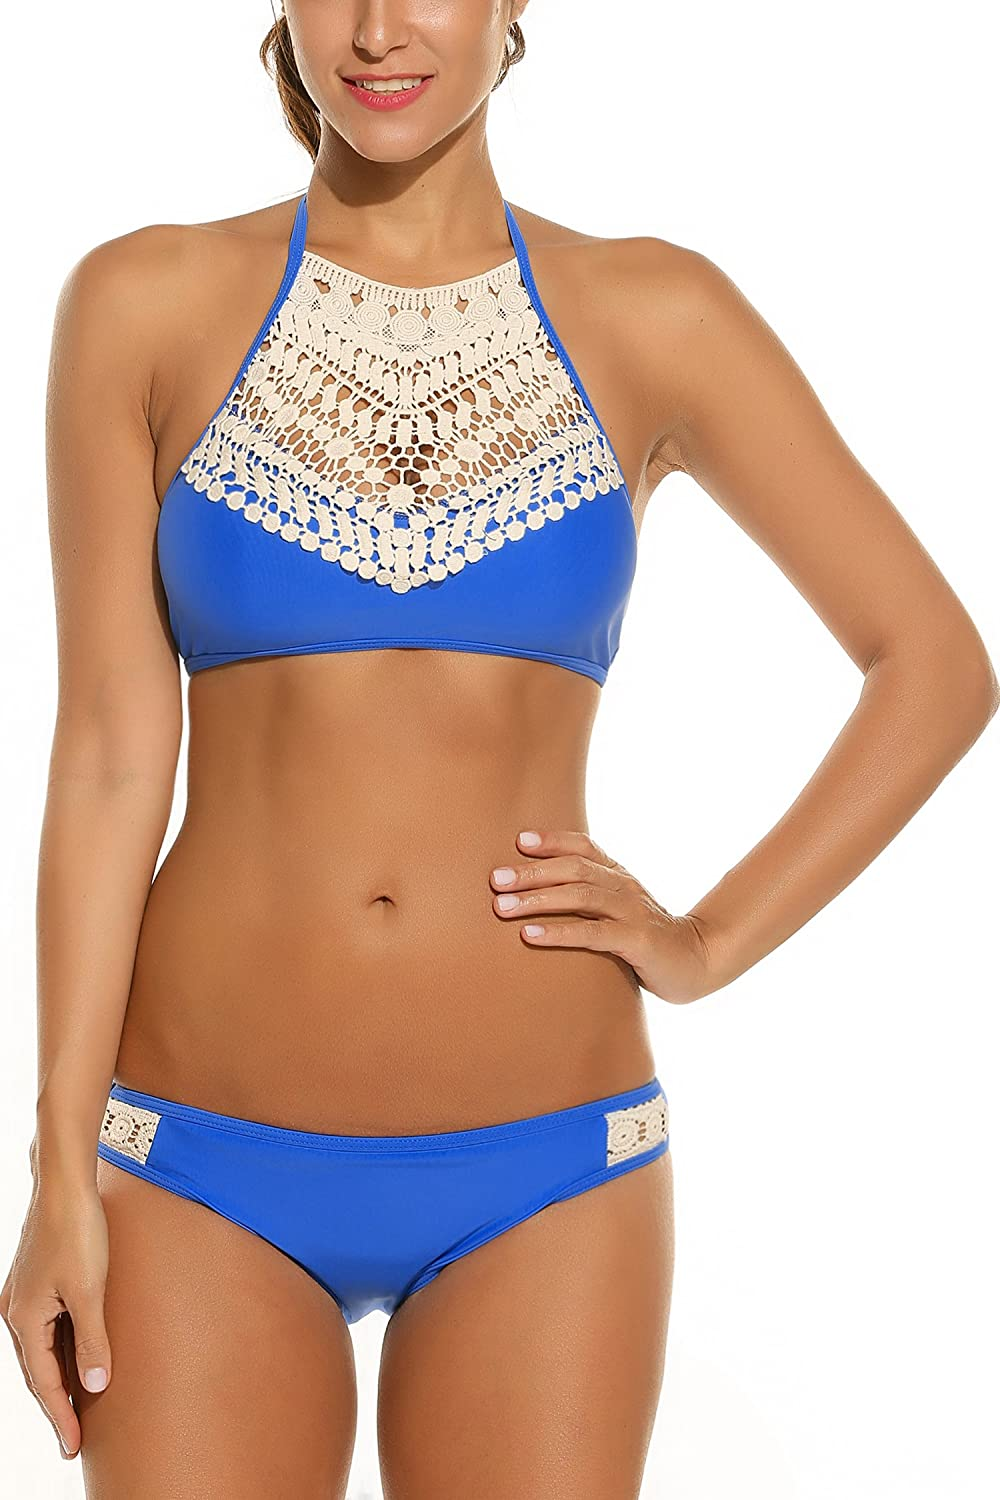 8f763542f0 Triangle Bikini Swimsuits features with adjustable shoulder strap, push up  cups with underwire for support,It is a great ...